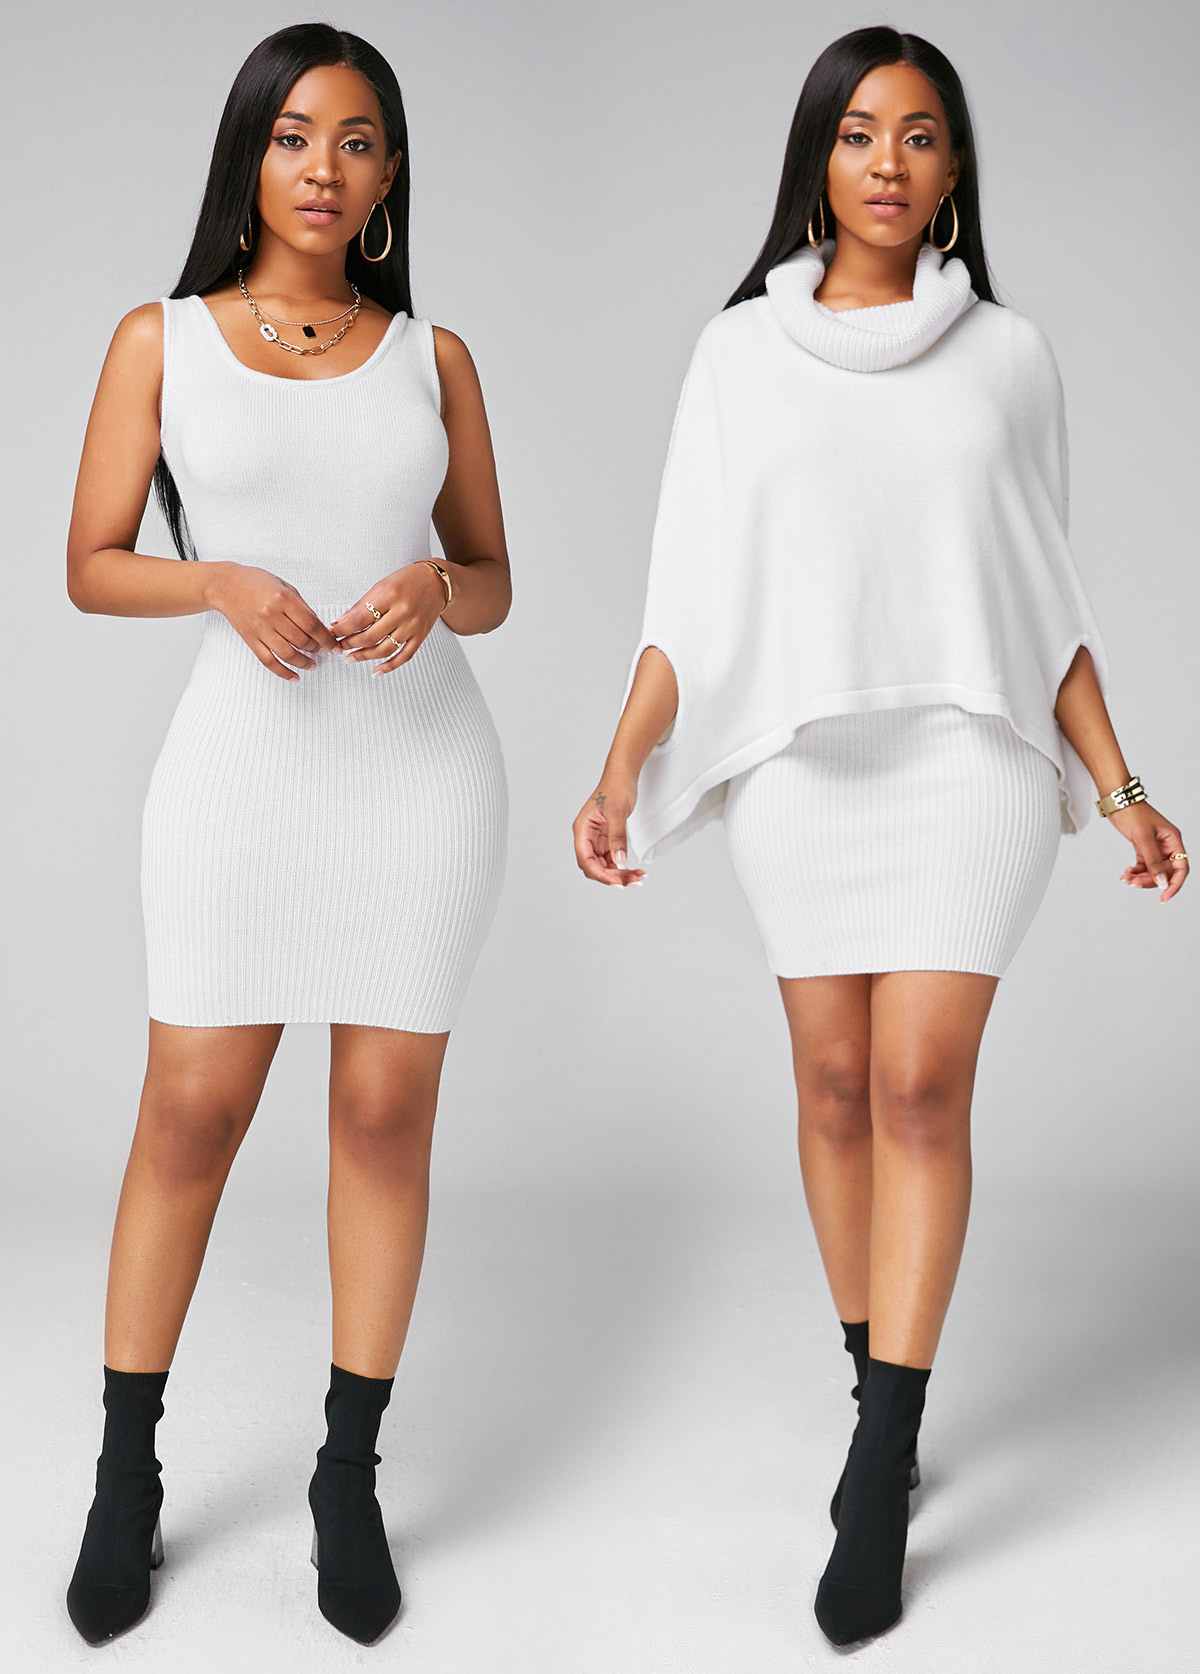 ROTITA Cape Shoulder Cowl Neck Top and Sweater Dress